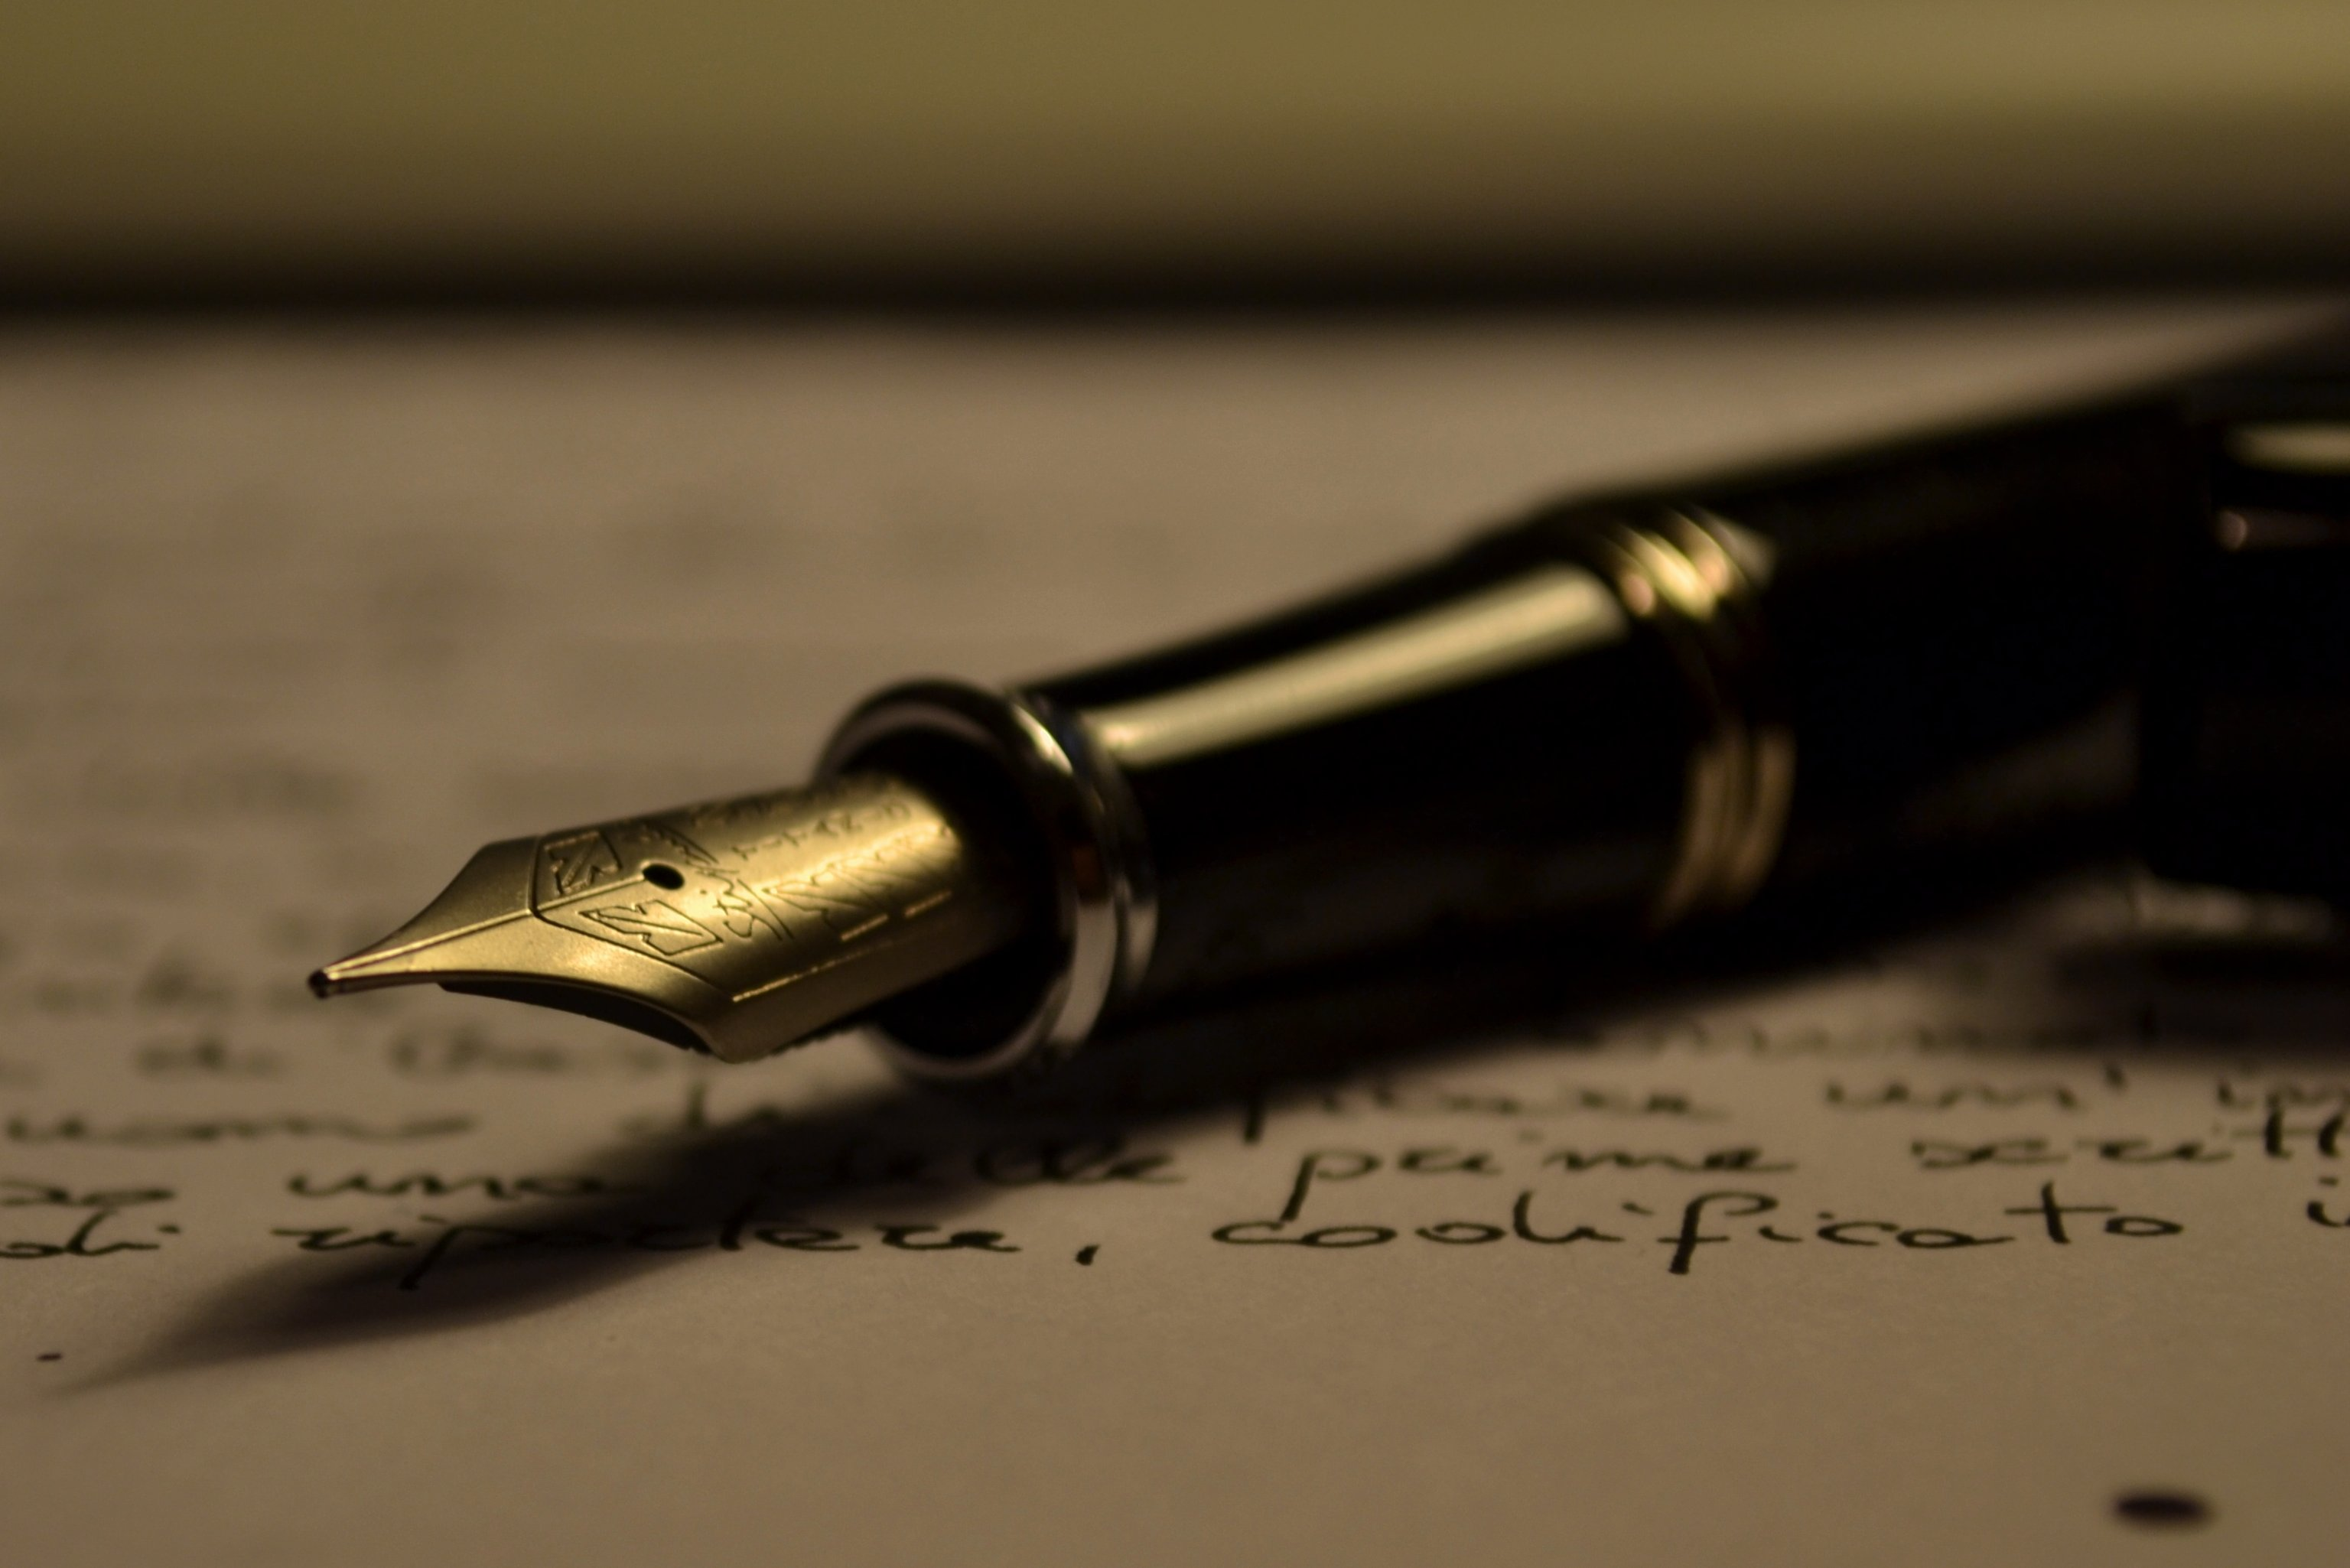 We'll write 500 word article with keywords